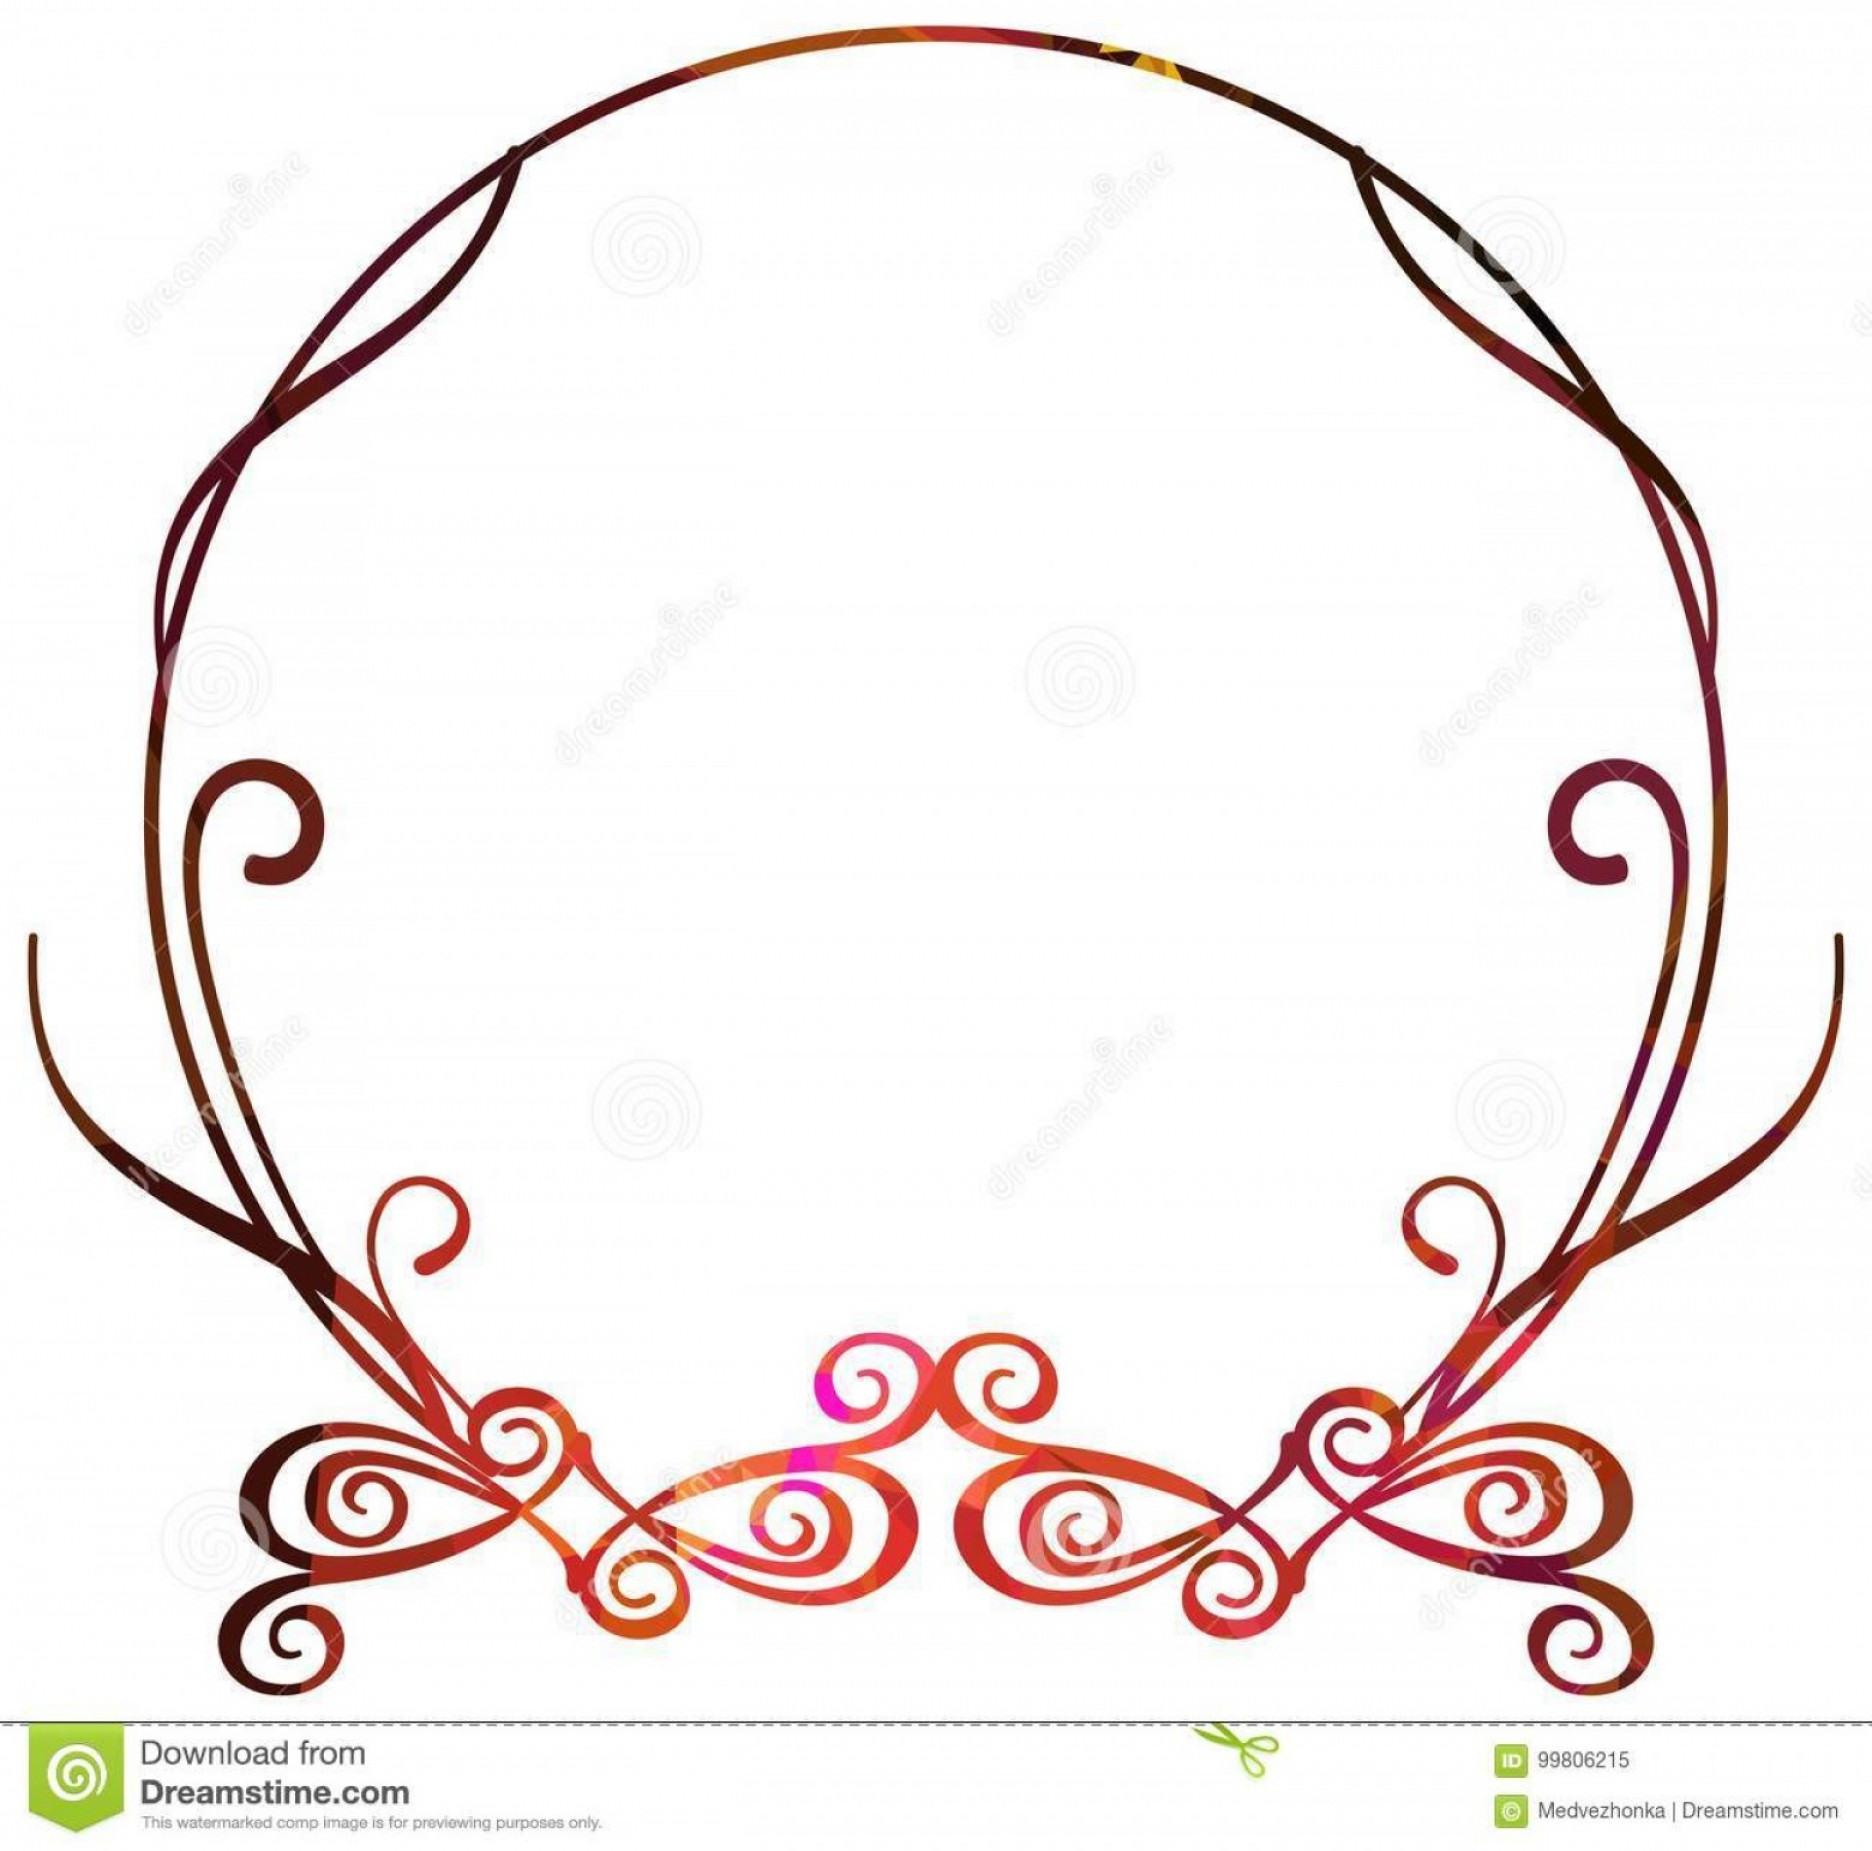 Luxury Round Frame Vector: Luxurious Abstract Round Frame Vector Clip Art Luxurious Abstract Round Frame Copy Space Beautiful Background Your Artwork Image